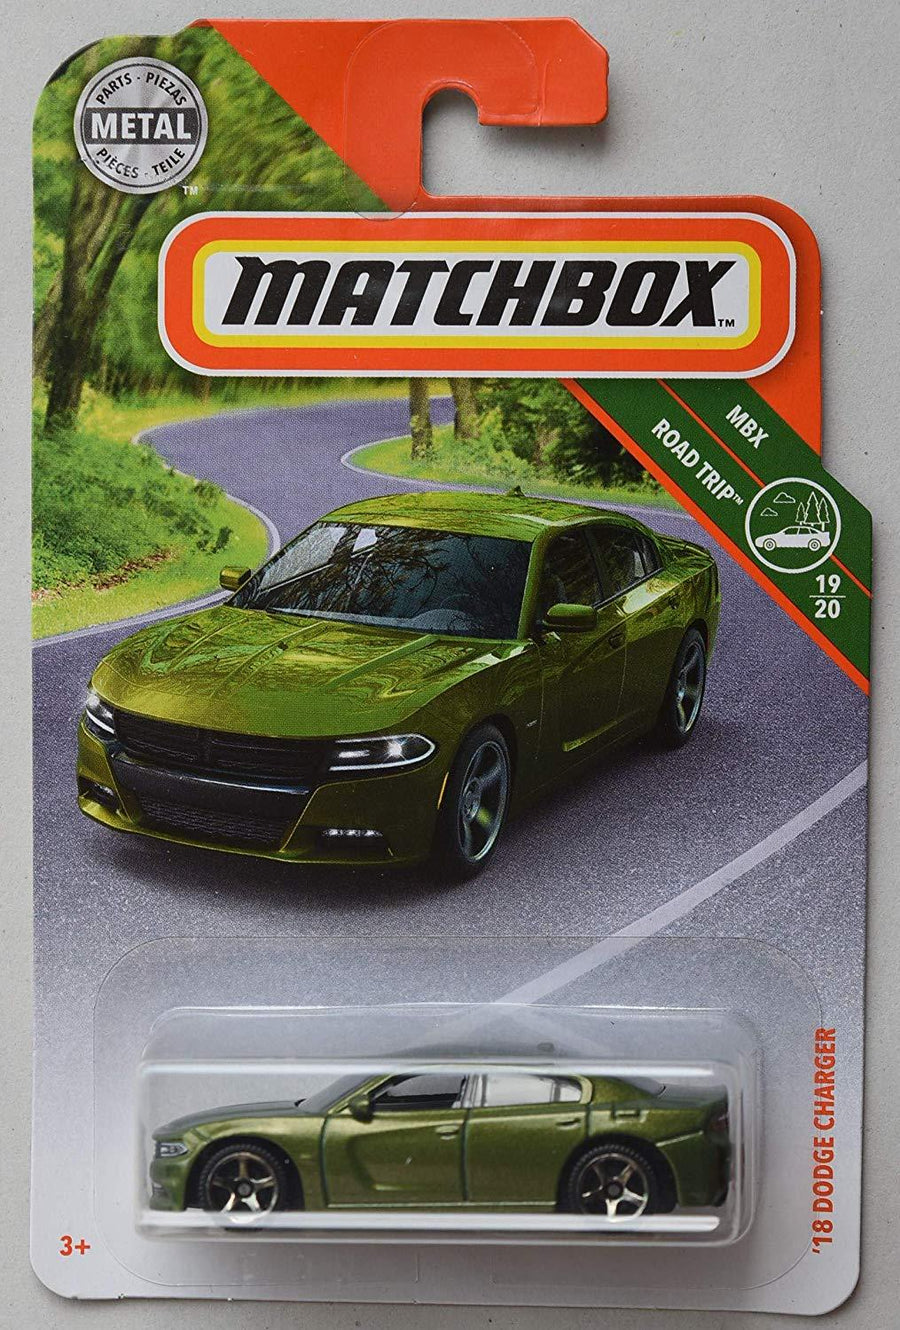 Matchbox Road Trip Series, Green '18 Dodge Charger 19/20 - iZiffy.com